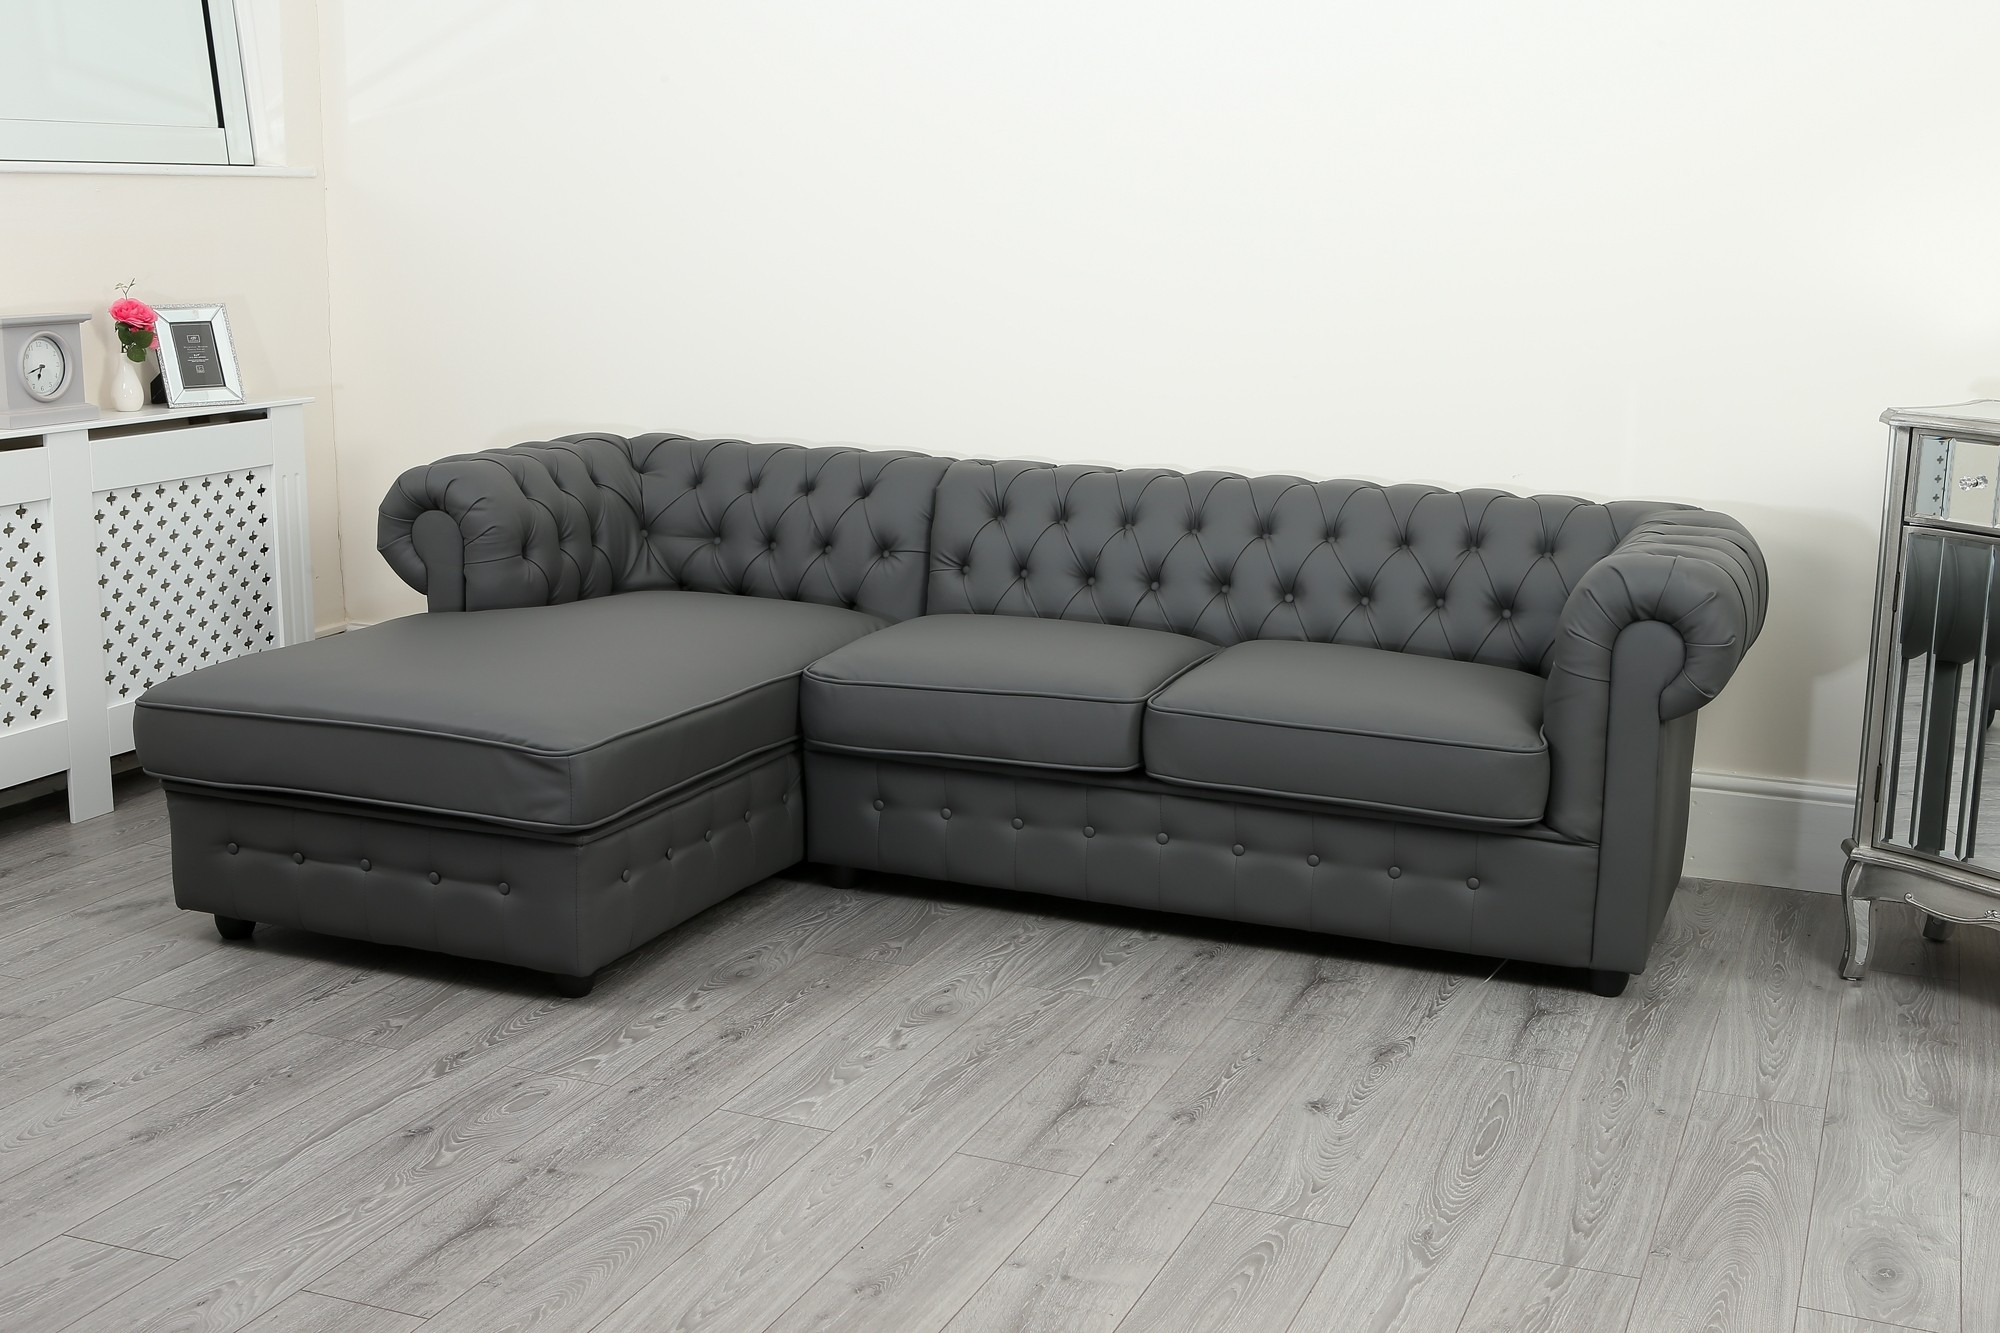 Empire Chesterfield Corner Sofa Bed In Grey Pu Leather